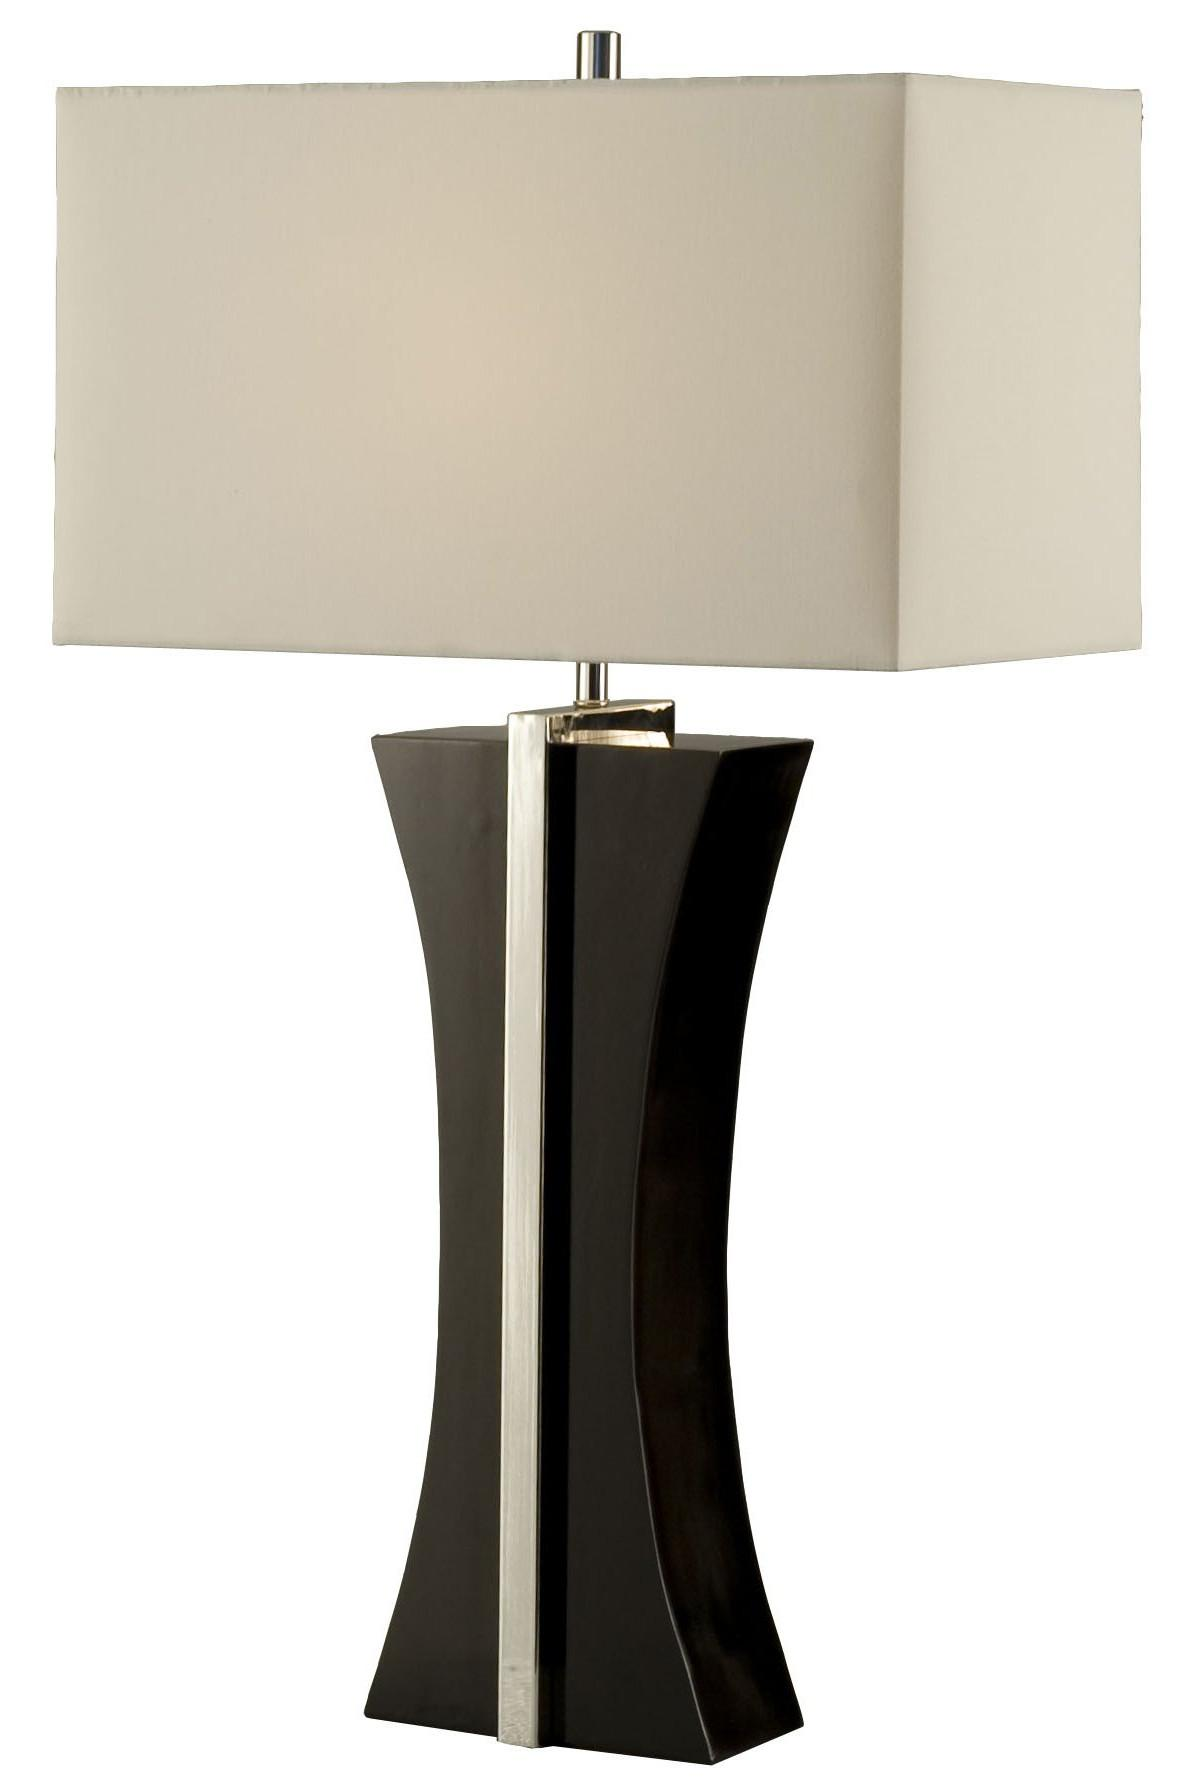 Designer Table Lamps Home Combo